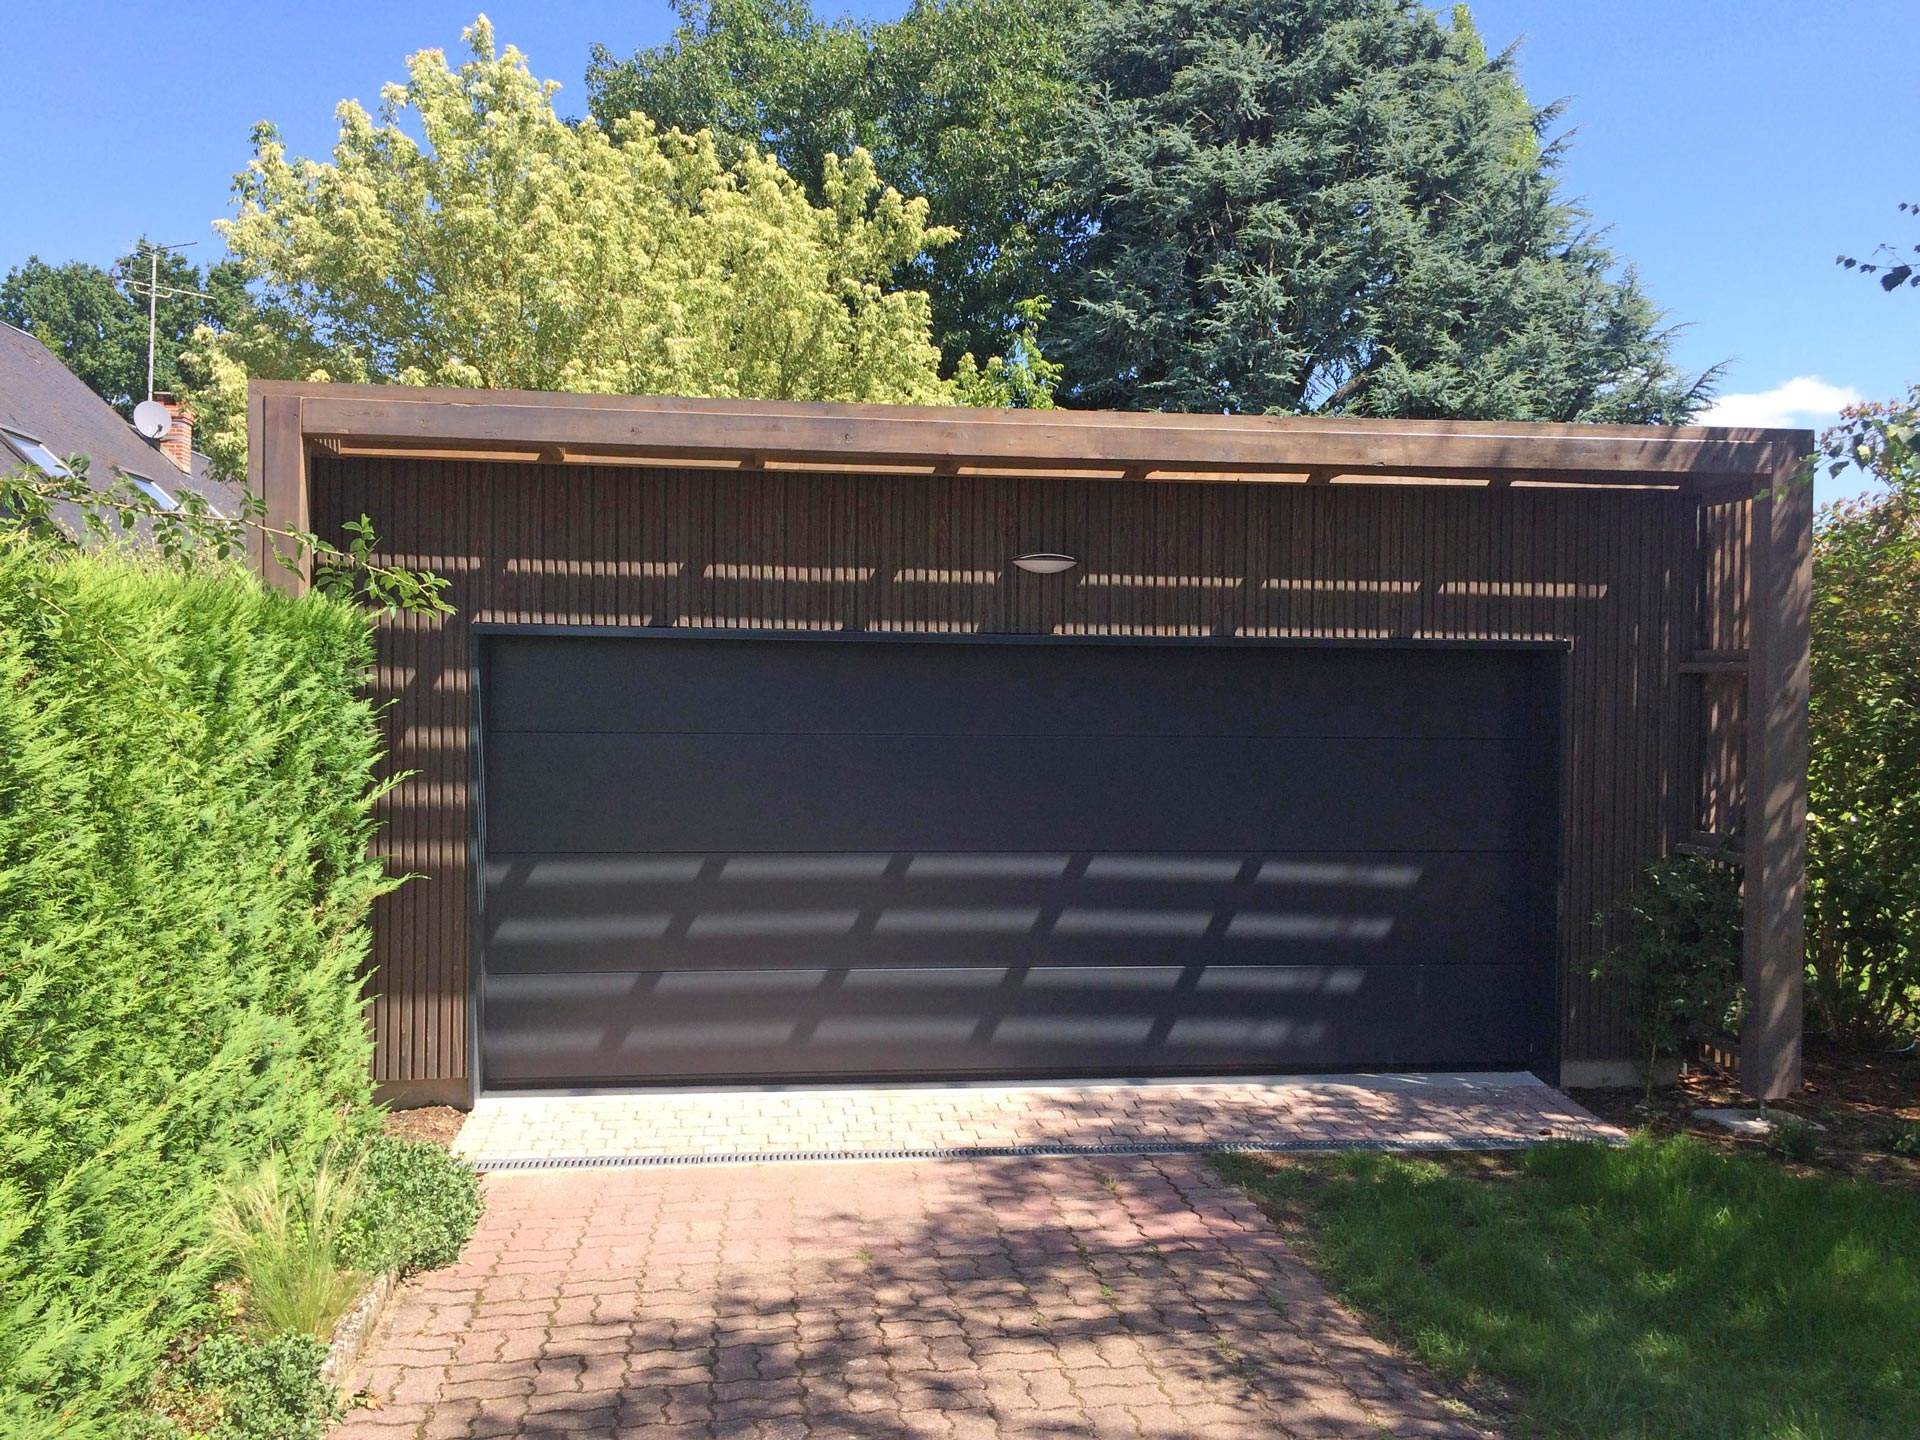 garage bois toit plat index of carport image toit plat m garage en bois massif m toit plat. Black Bedroom Furniture Sets. Home Design Ideas